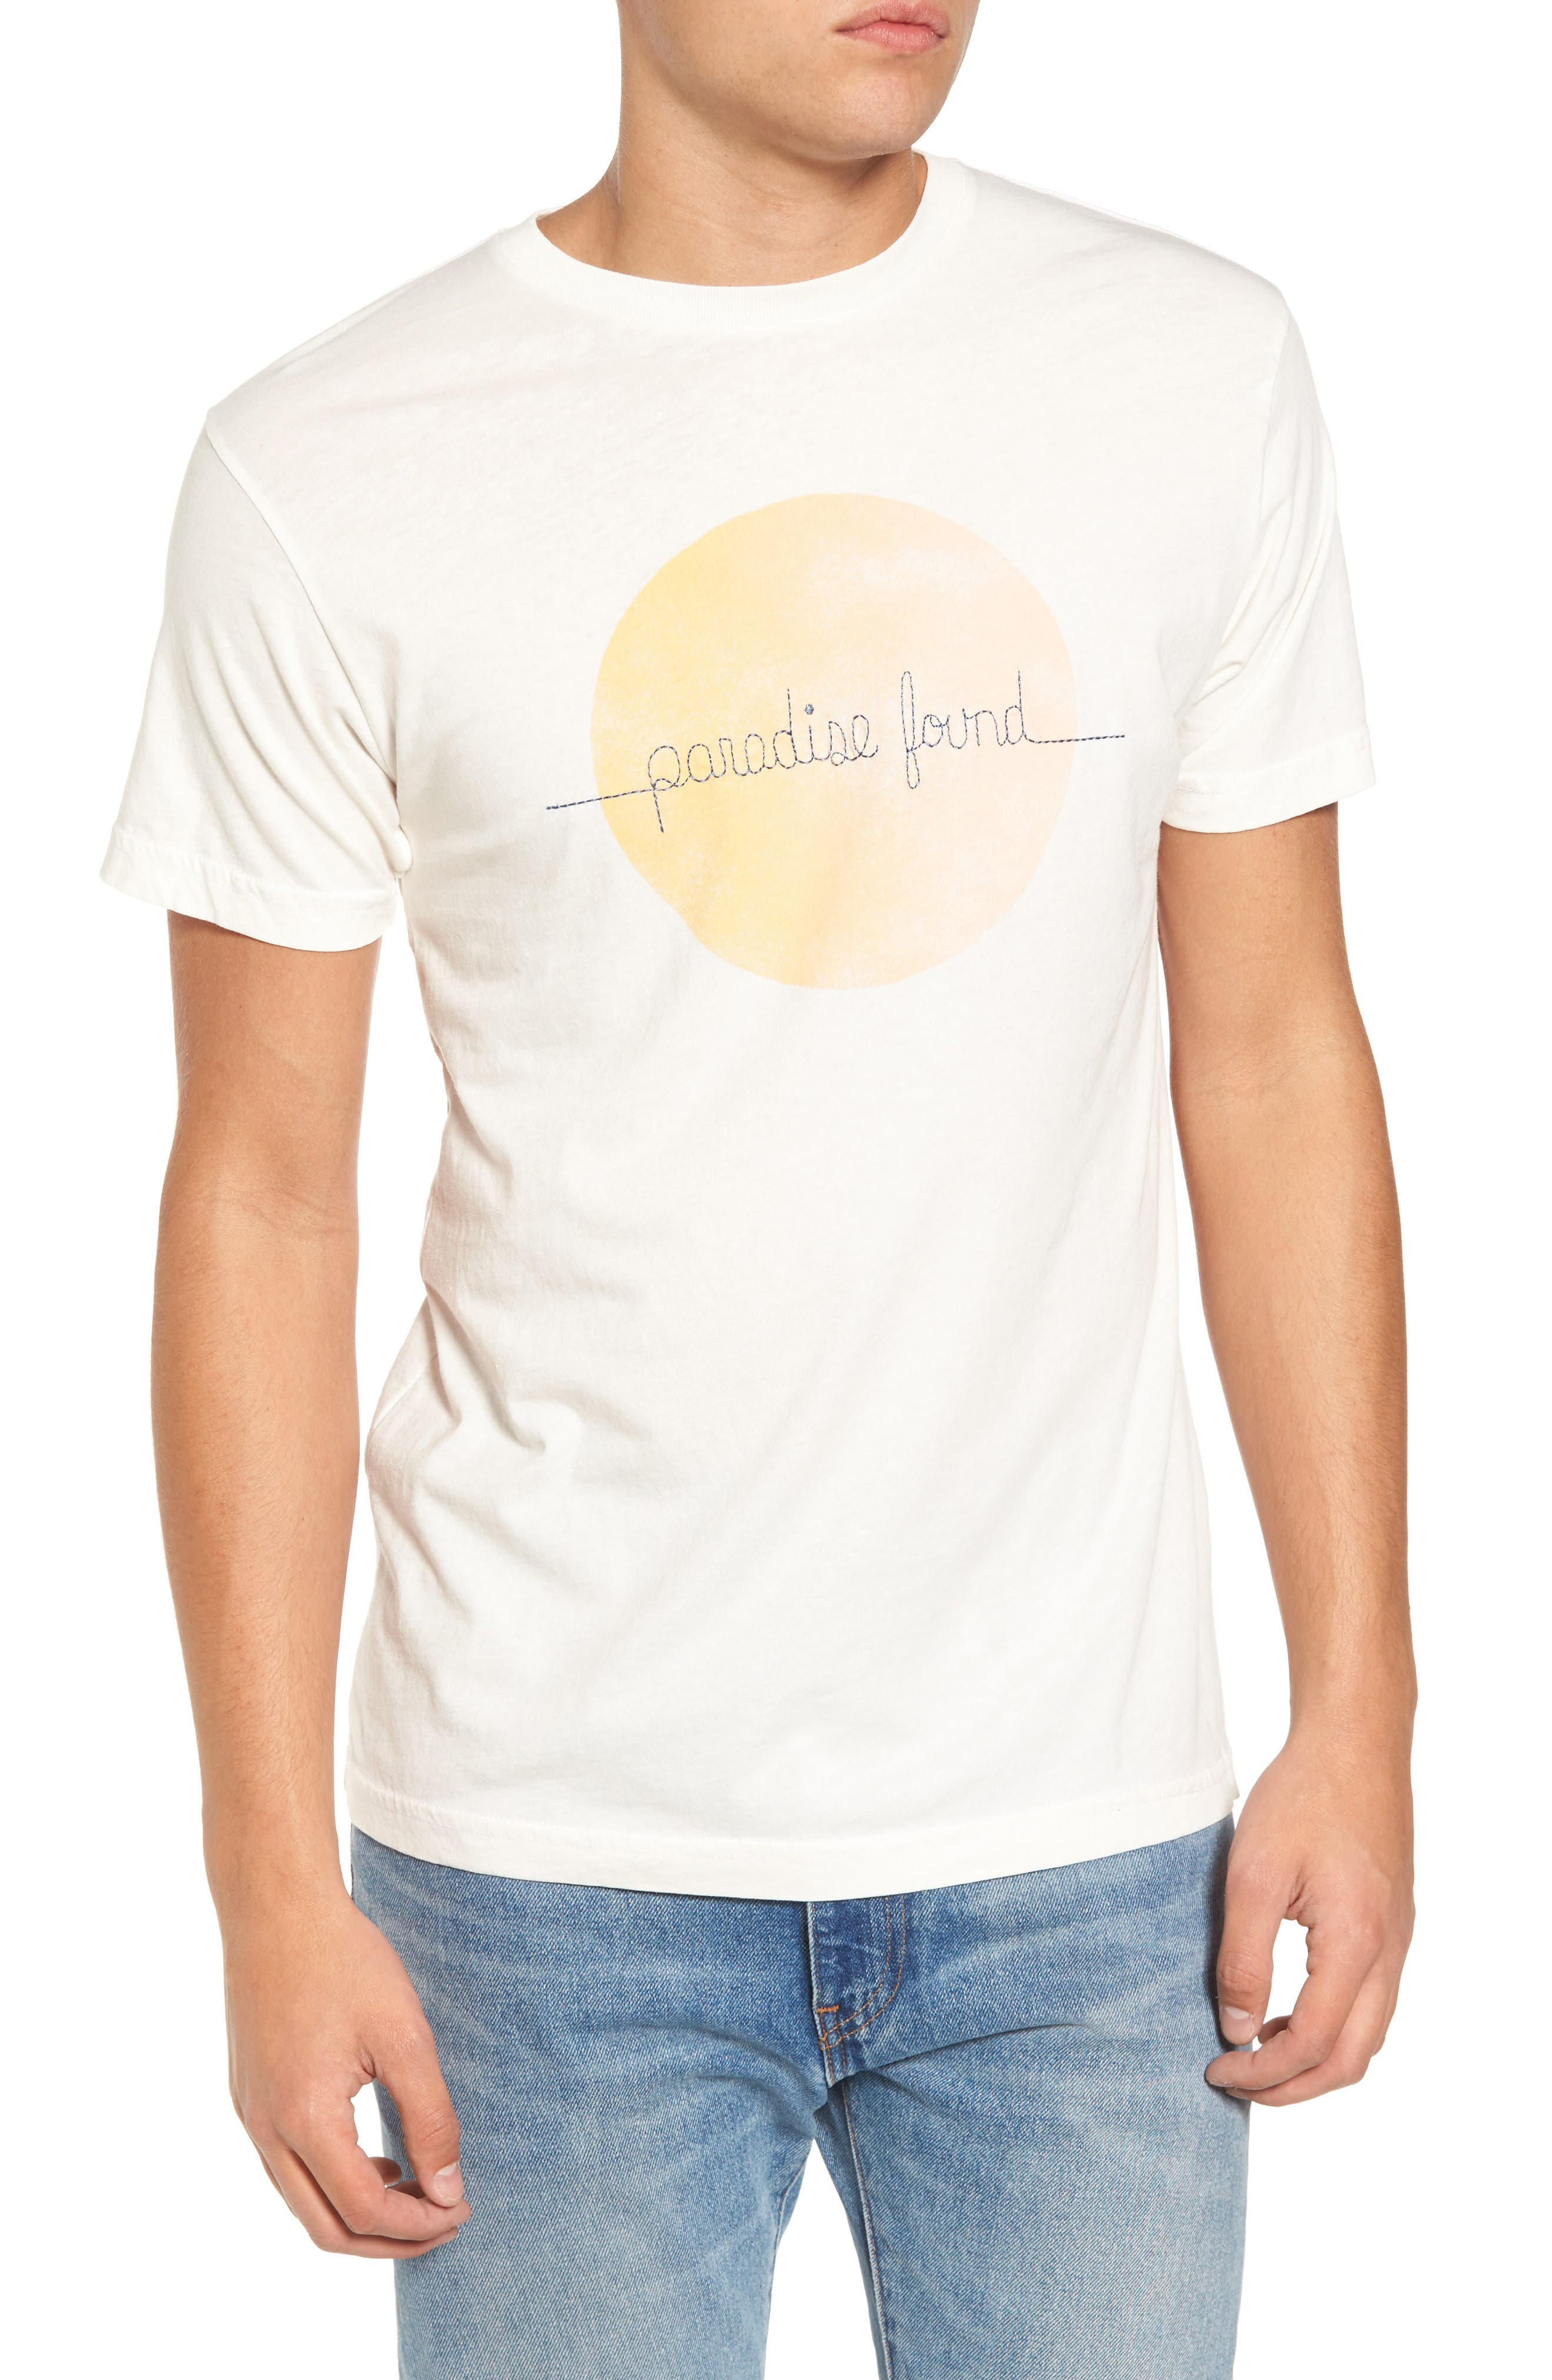 Alternate Image 1 Selected - Altru Paradise Found Embroidered T-Shirt